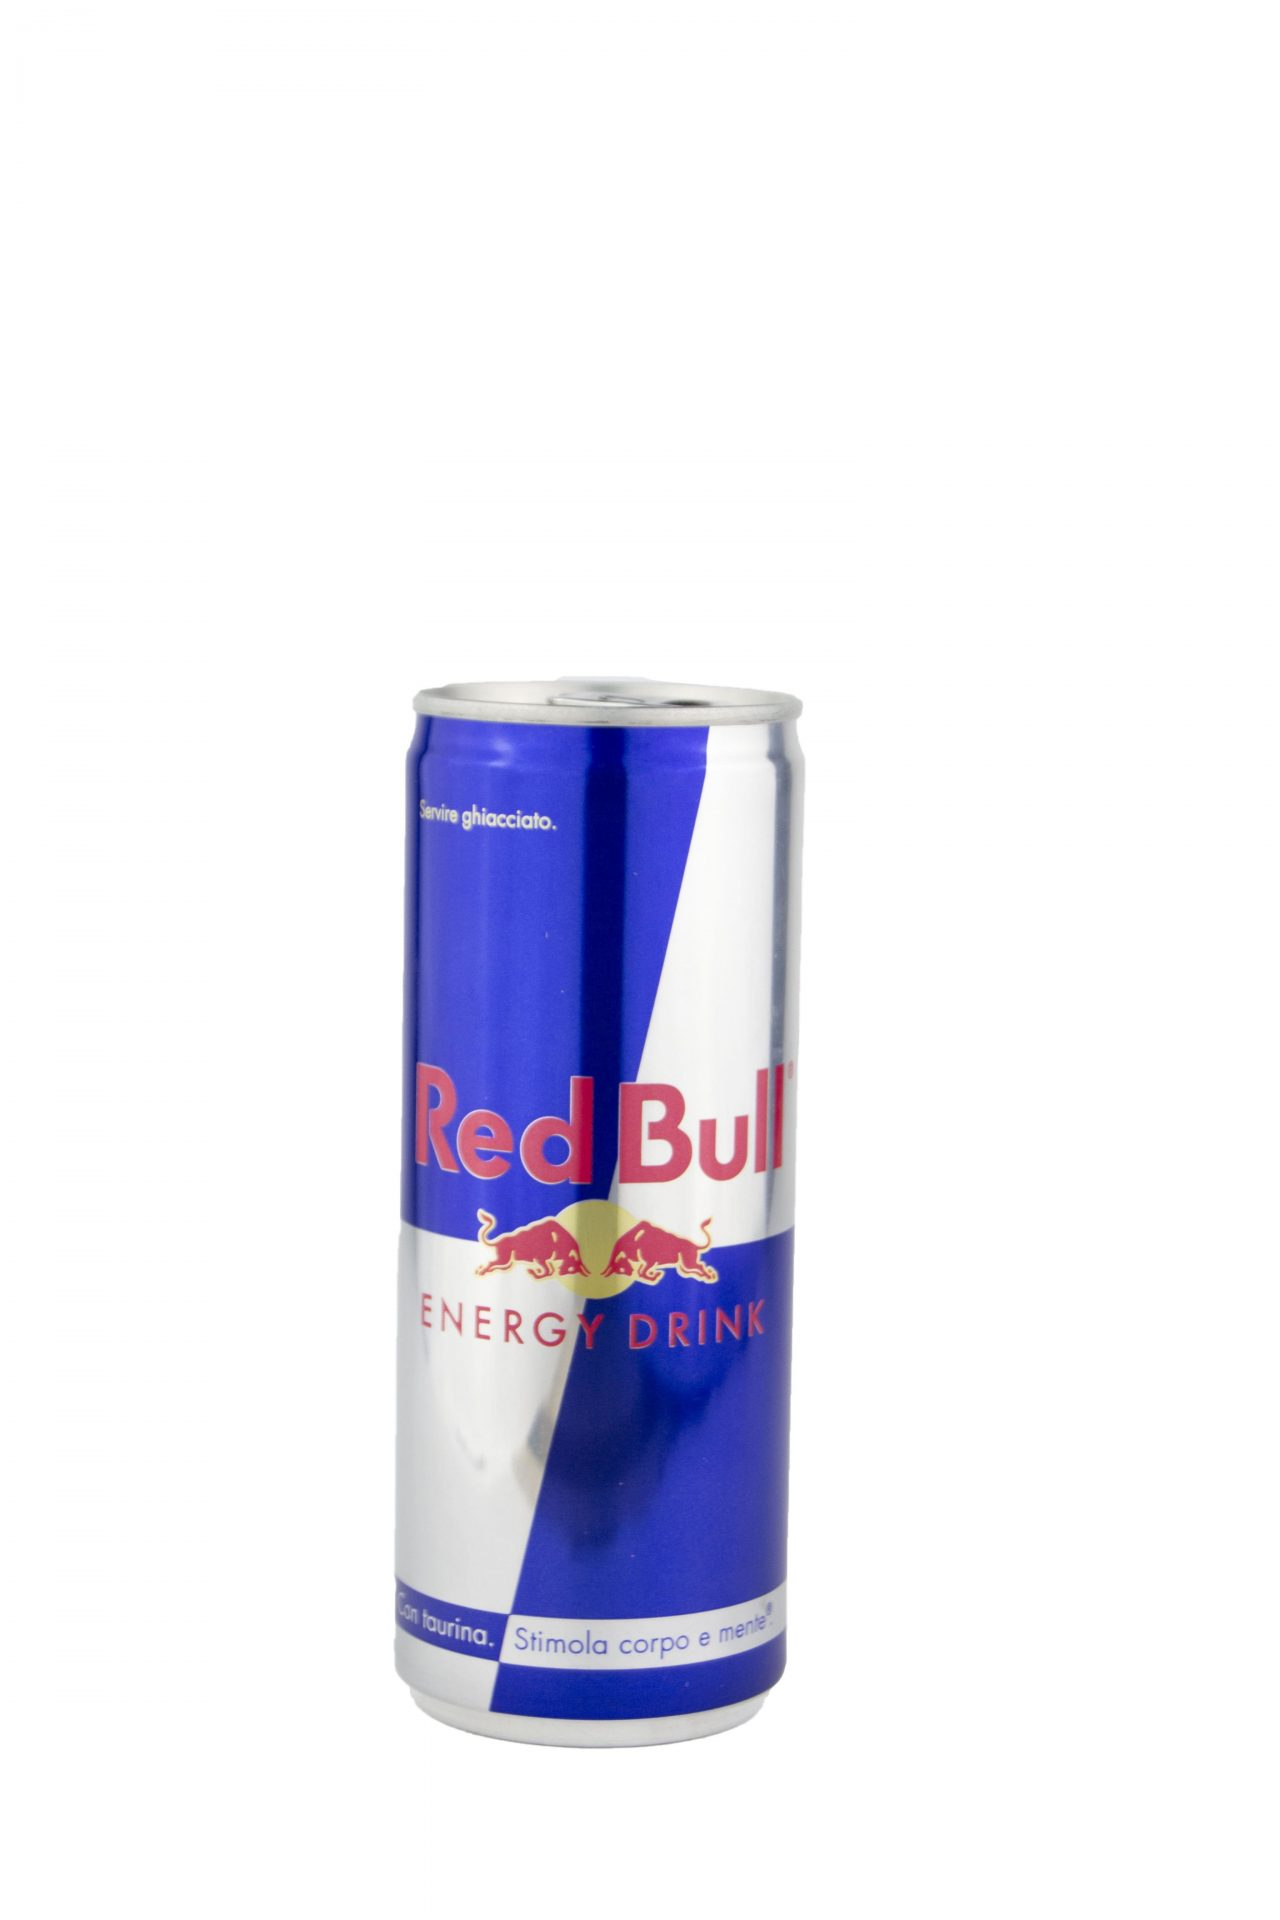 Red Bull – Energy Drink